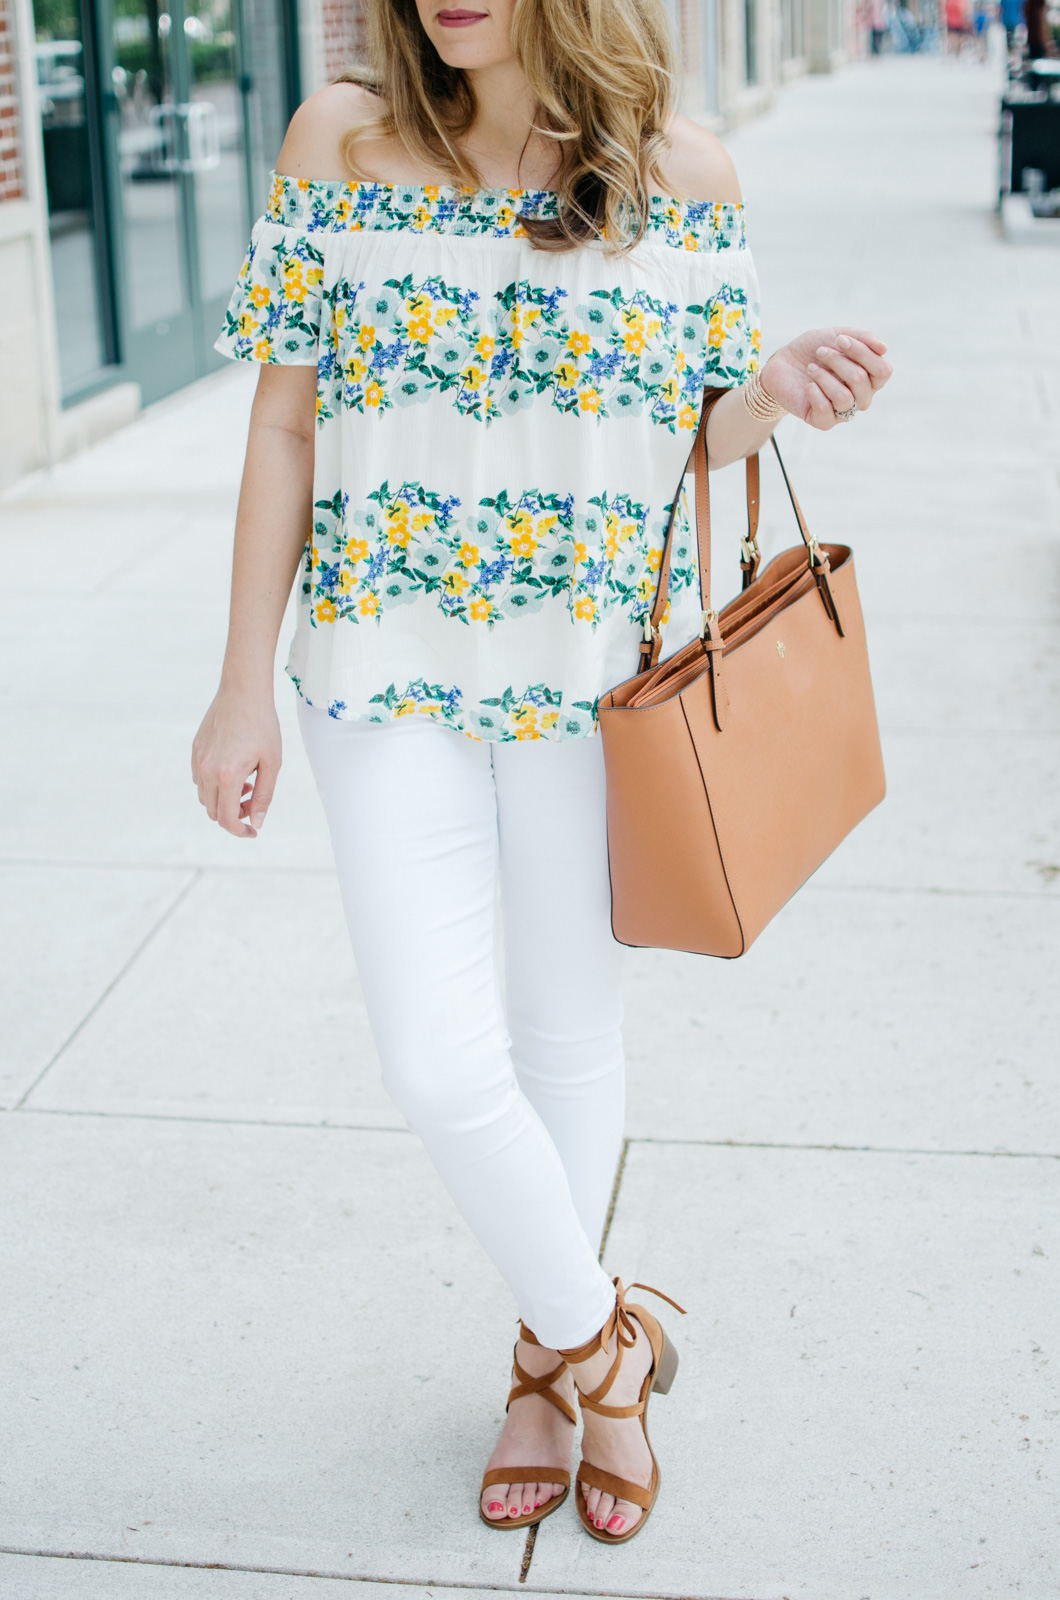 all white spring outfit - cute white jeans outfits | For more spring weekend outfits, head to bylaurenm.com